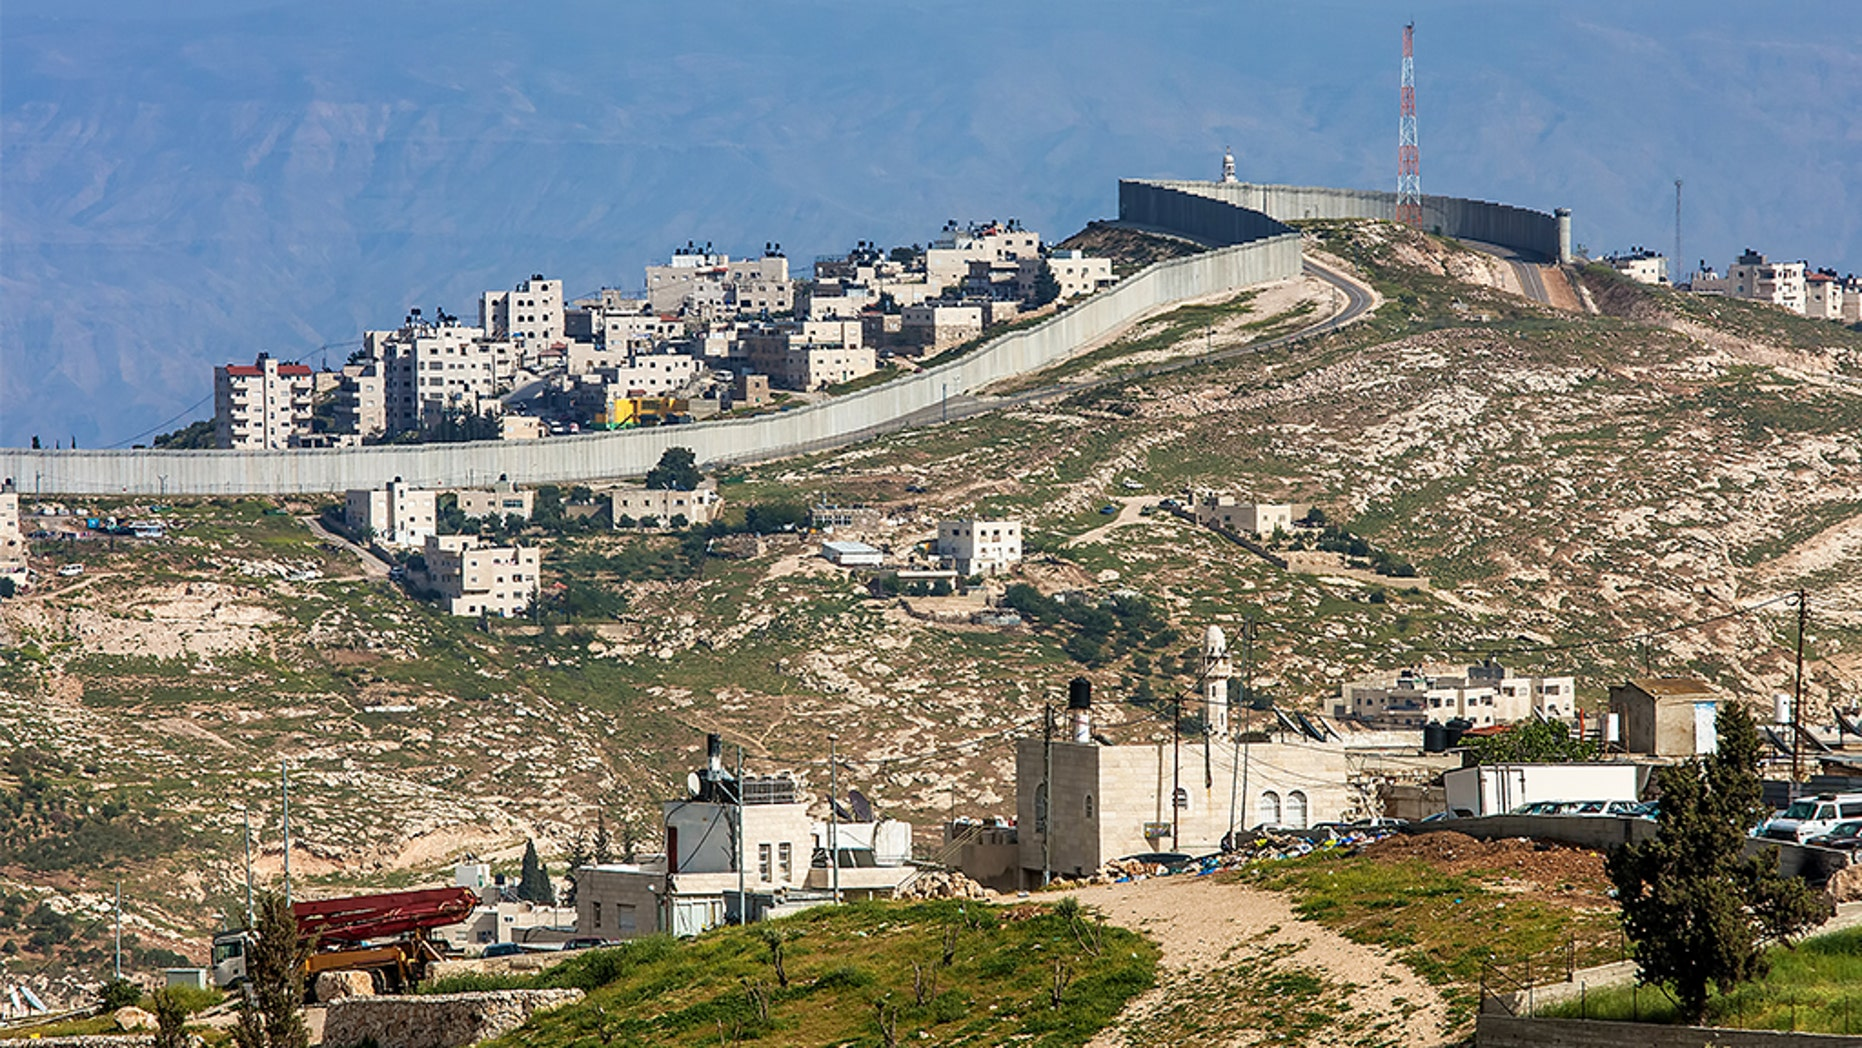 Israeli officials say seven people have been wounded, one critically, in a shooting allegedly by a Palestinian attacker outside a Jewish settlement in the West Bank. (iStock)